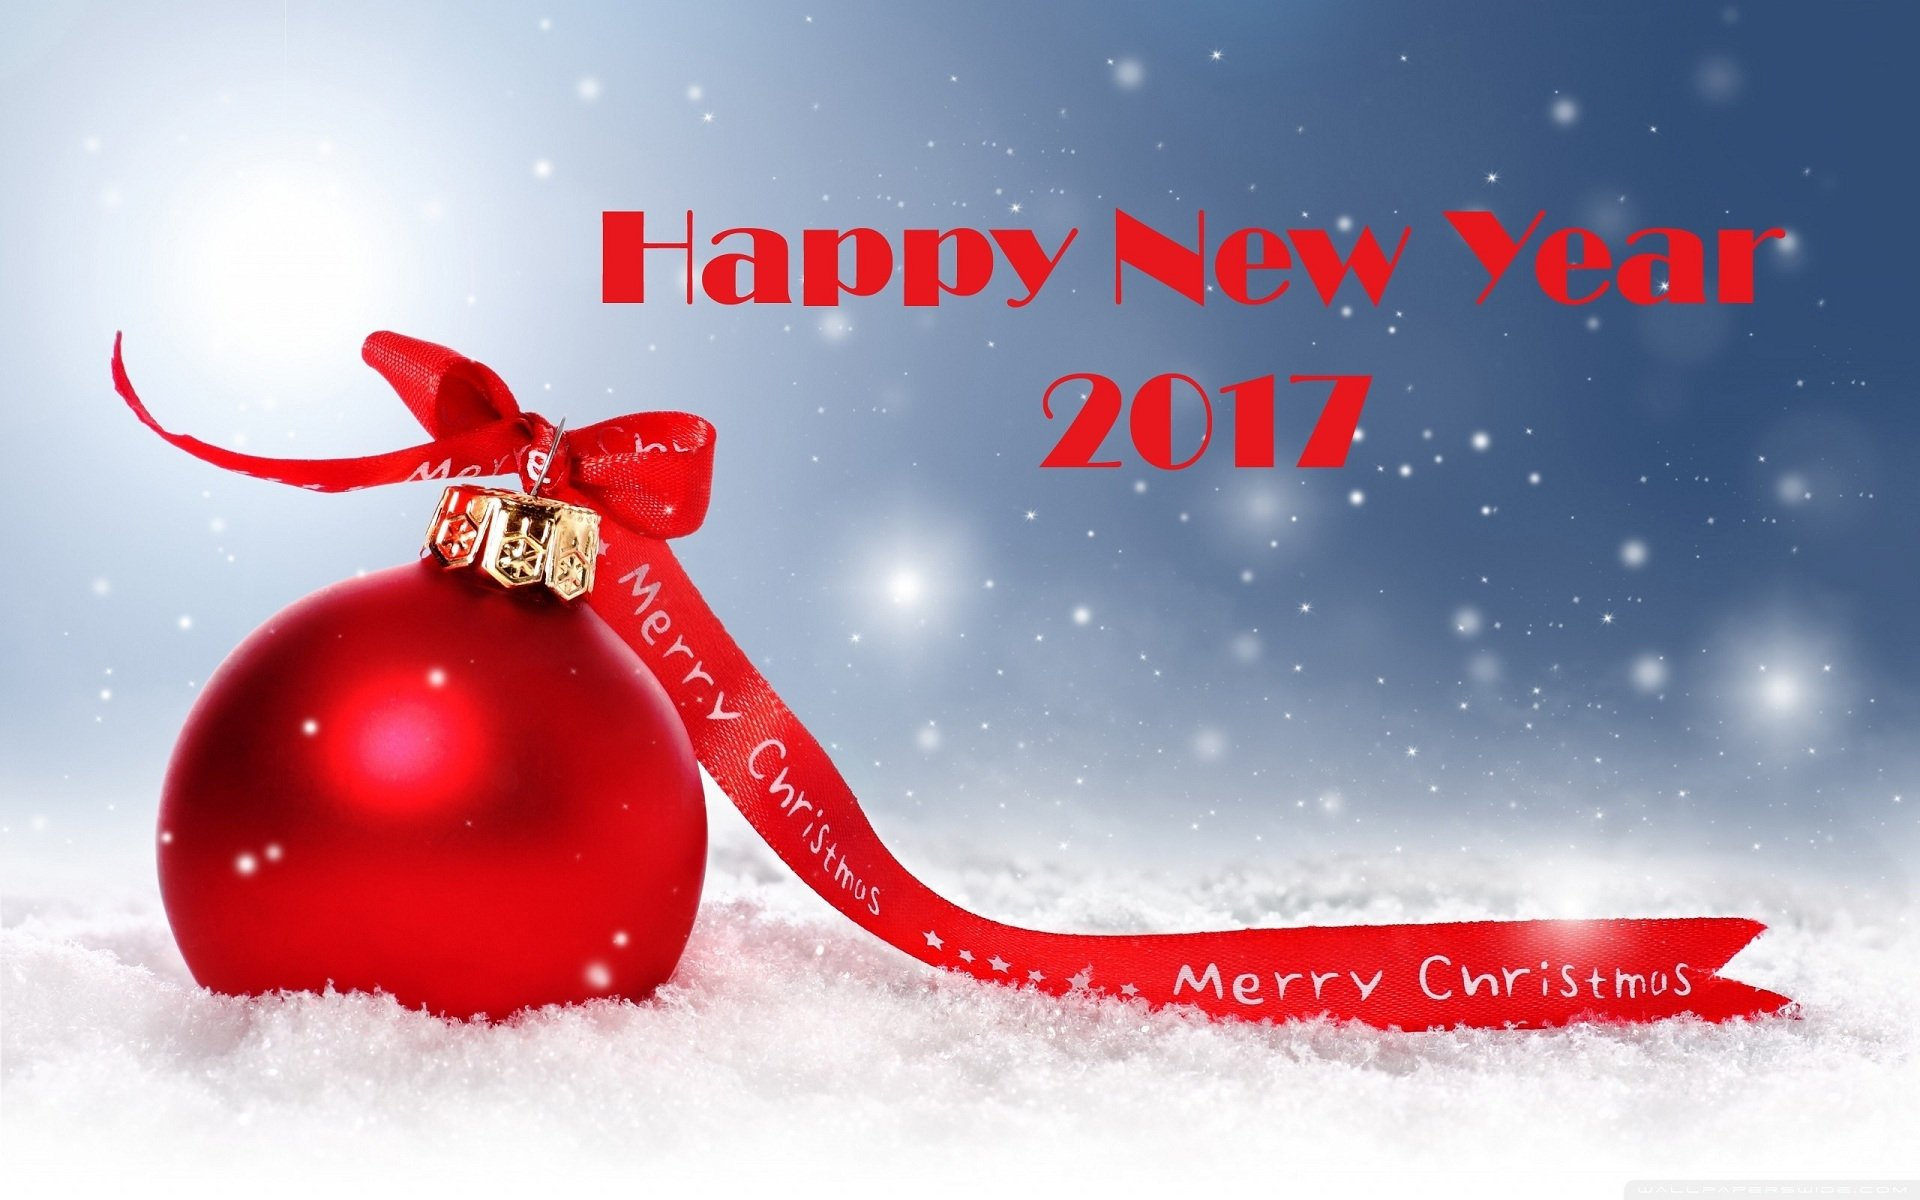 Holiday - New Year 2017  Holiday Christmas Ornaments Red Merry Christmas Wallpaper